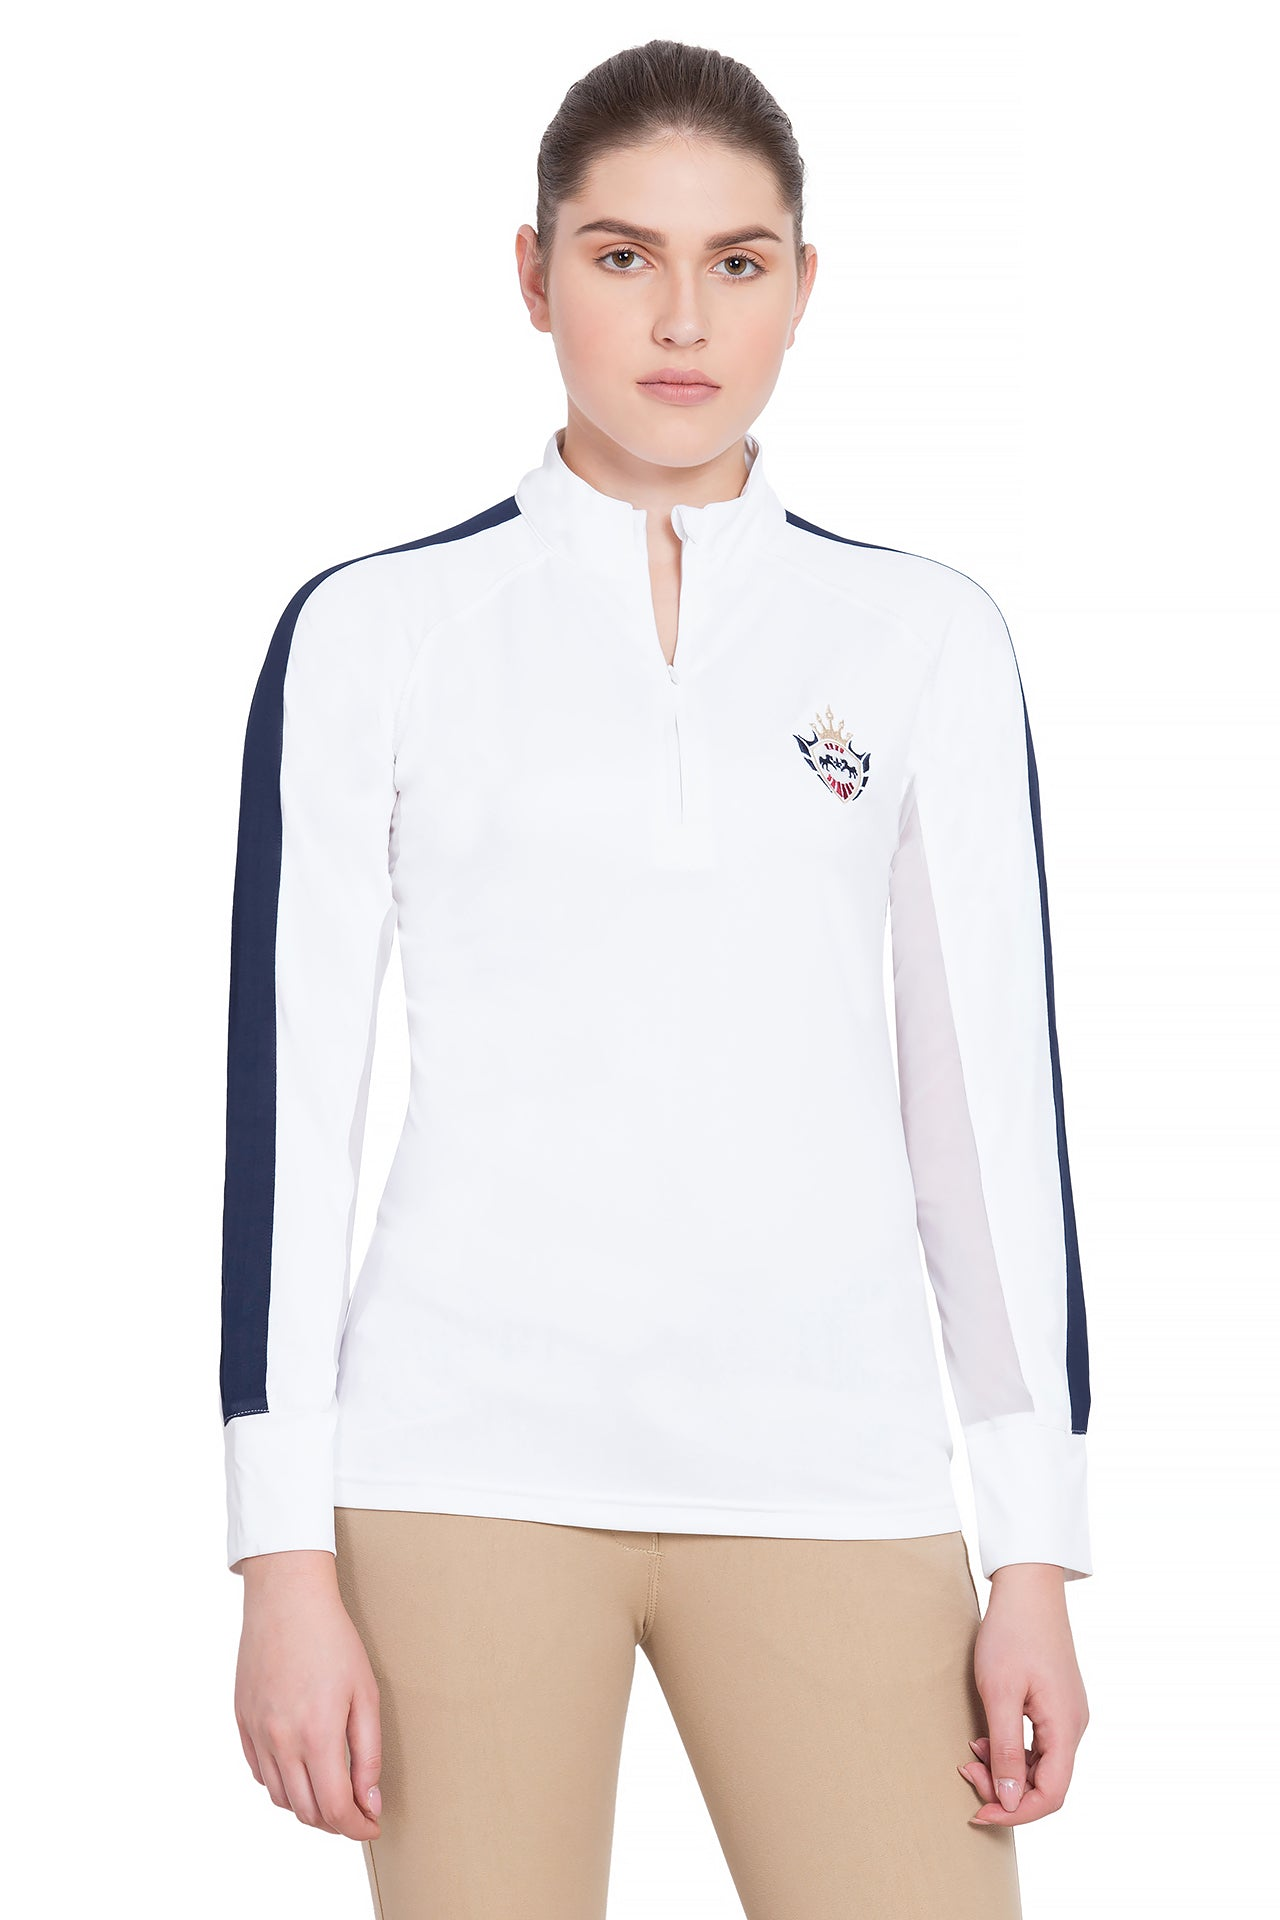 Ladies Jordan Long Sleeve Sport Shirt - Equine Couture - Breeches.com